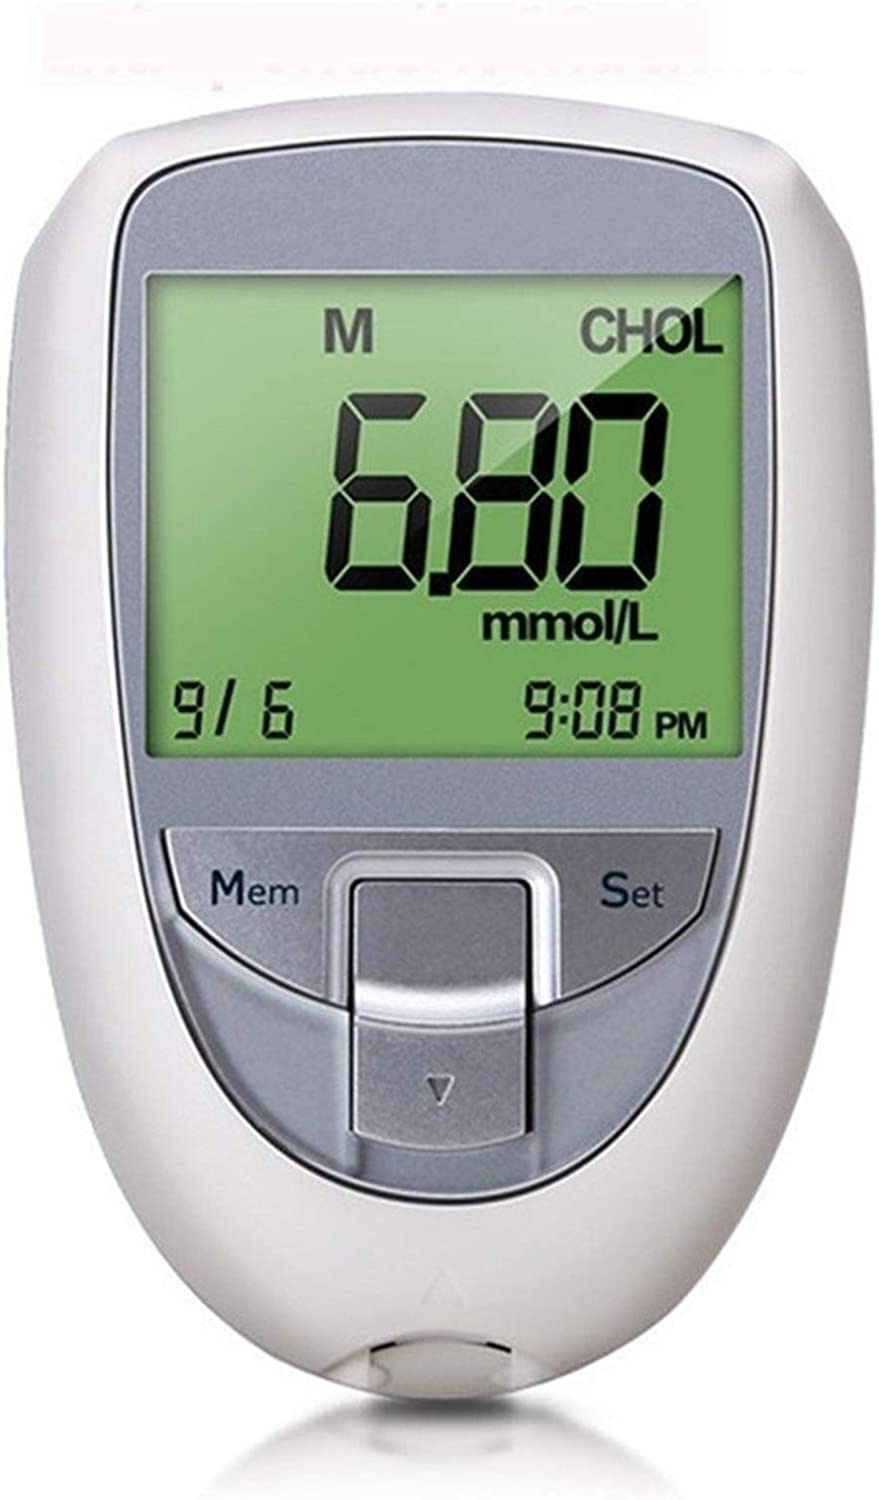 HTTDD Genuine Free Shipping 3 in 1 Blood Multifunctional Meter Uric Miami Mall Aci Glucose